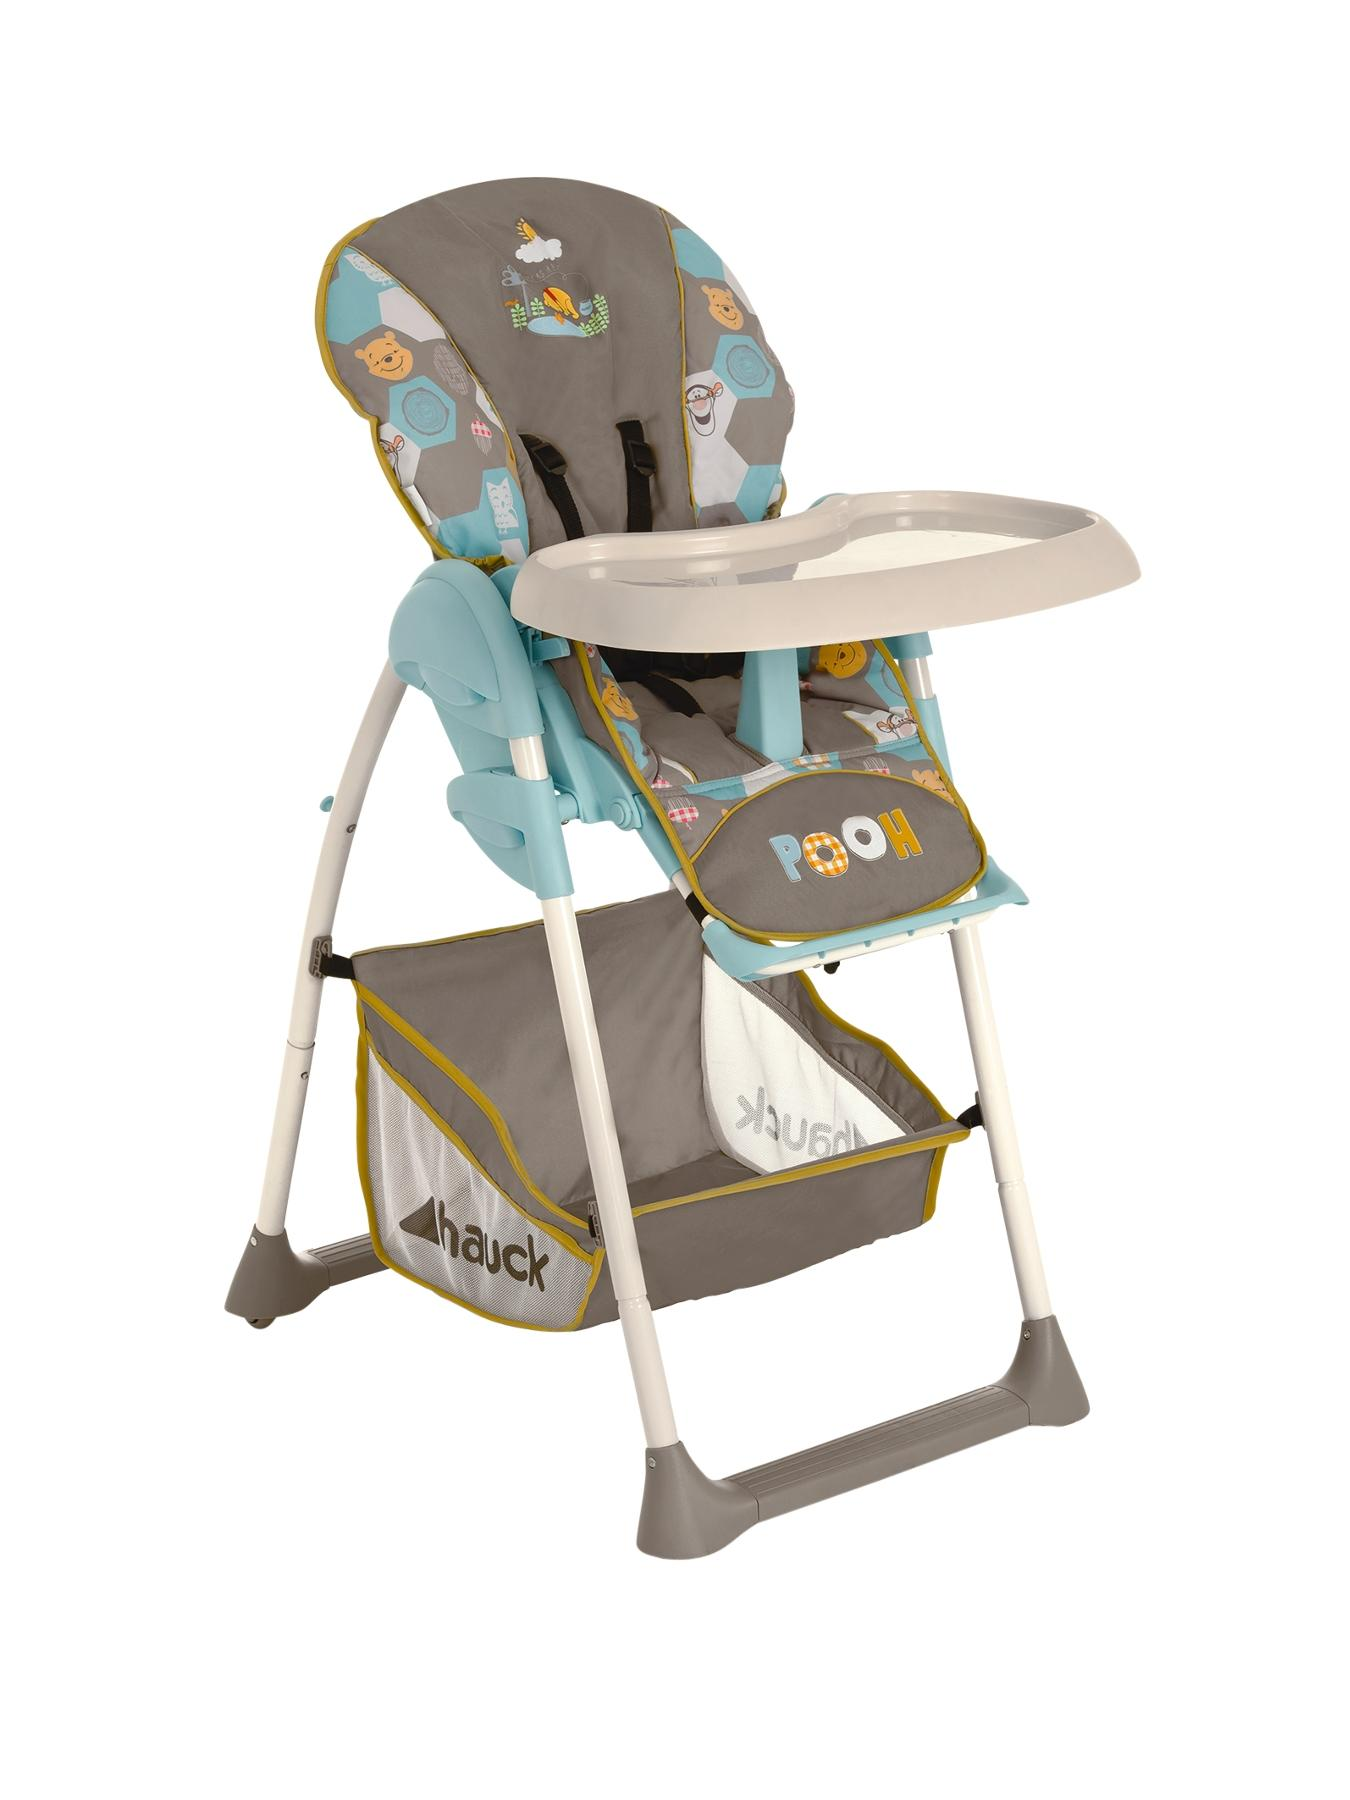 Cheap Baby High Chair Baby Highchair Shop For Cheap Baby Products And Save Online